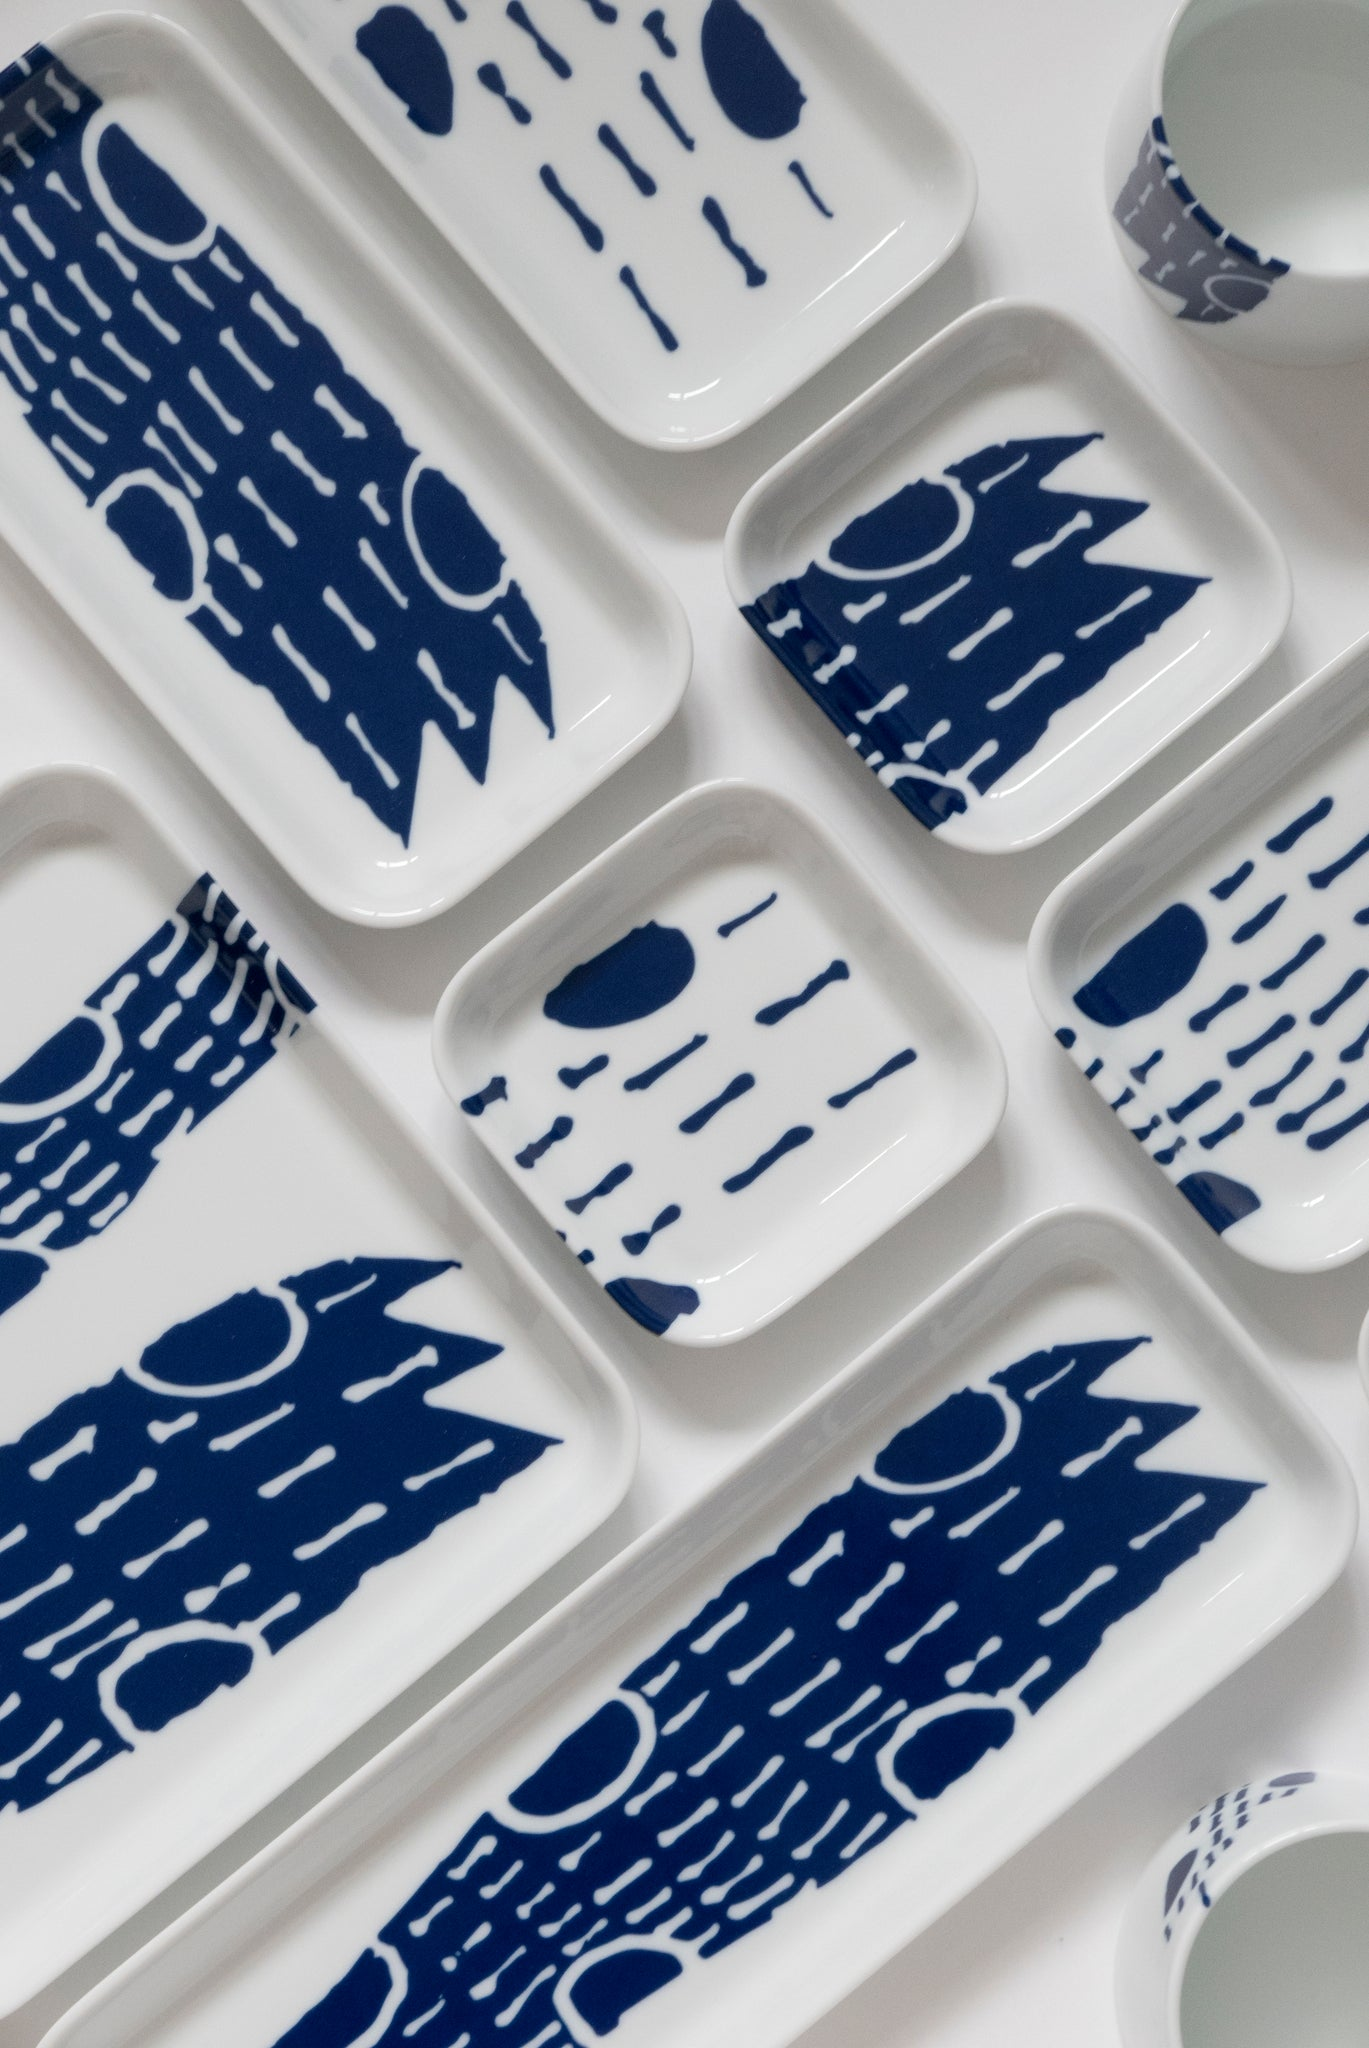 (PREORDER) Singapore Blue | Supermama and TOUCH SpecialCrafts 21cm Square Blue Tray